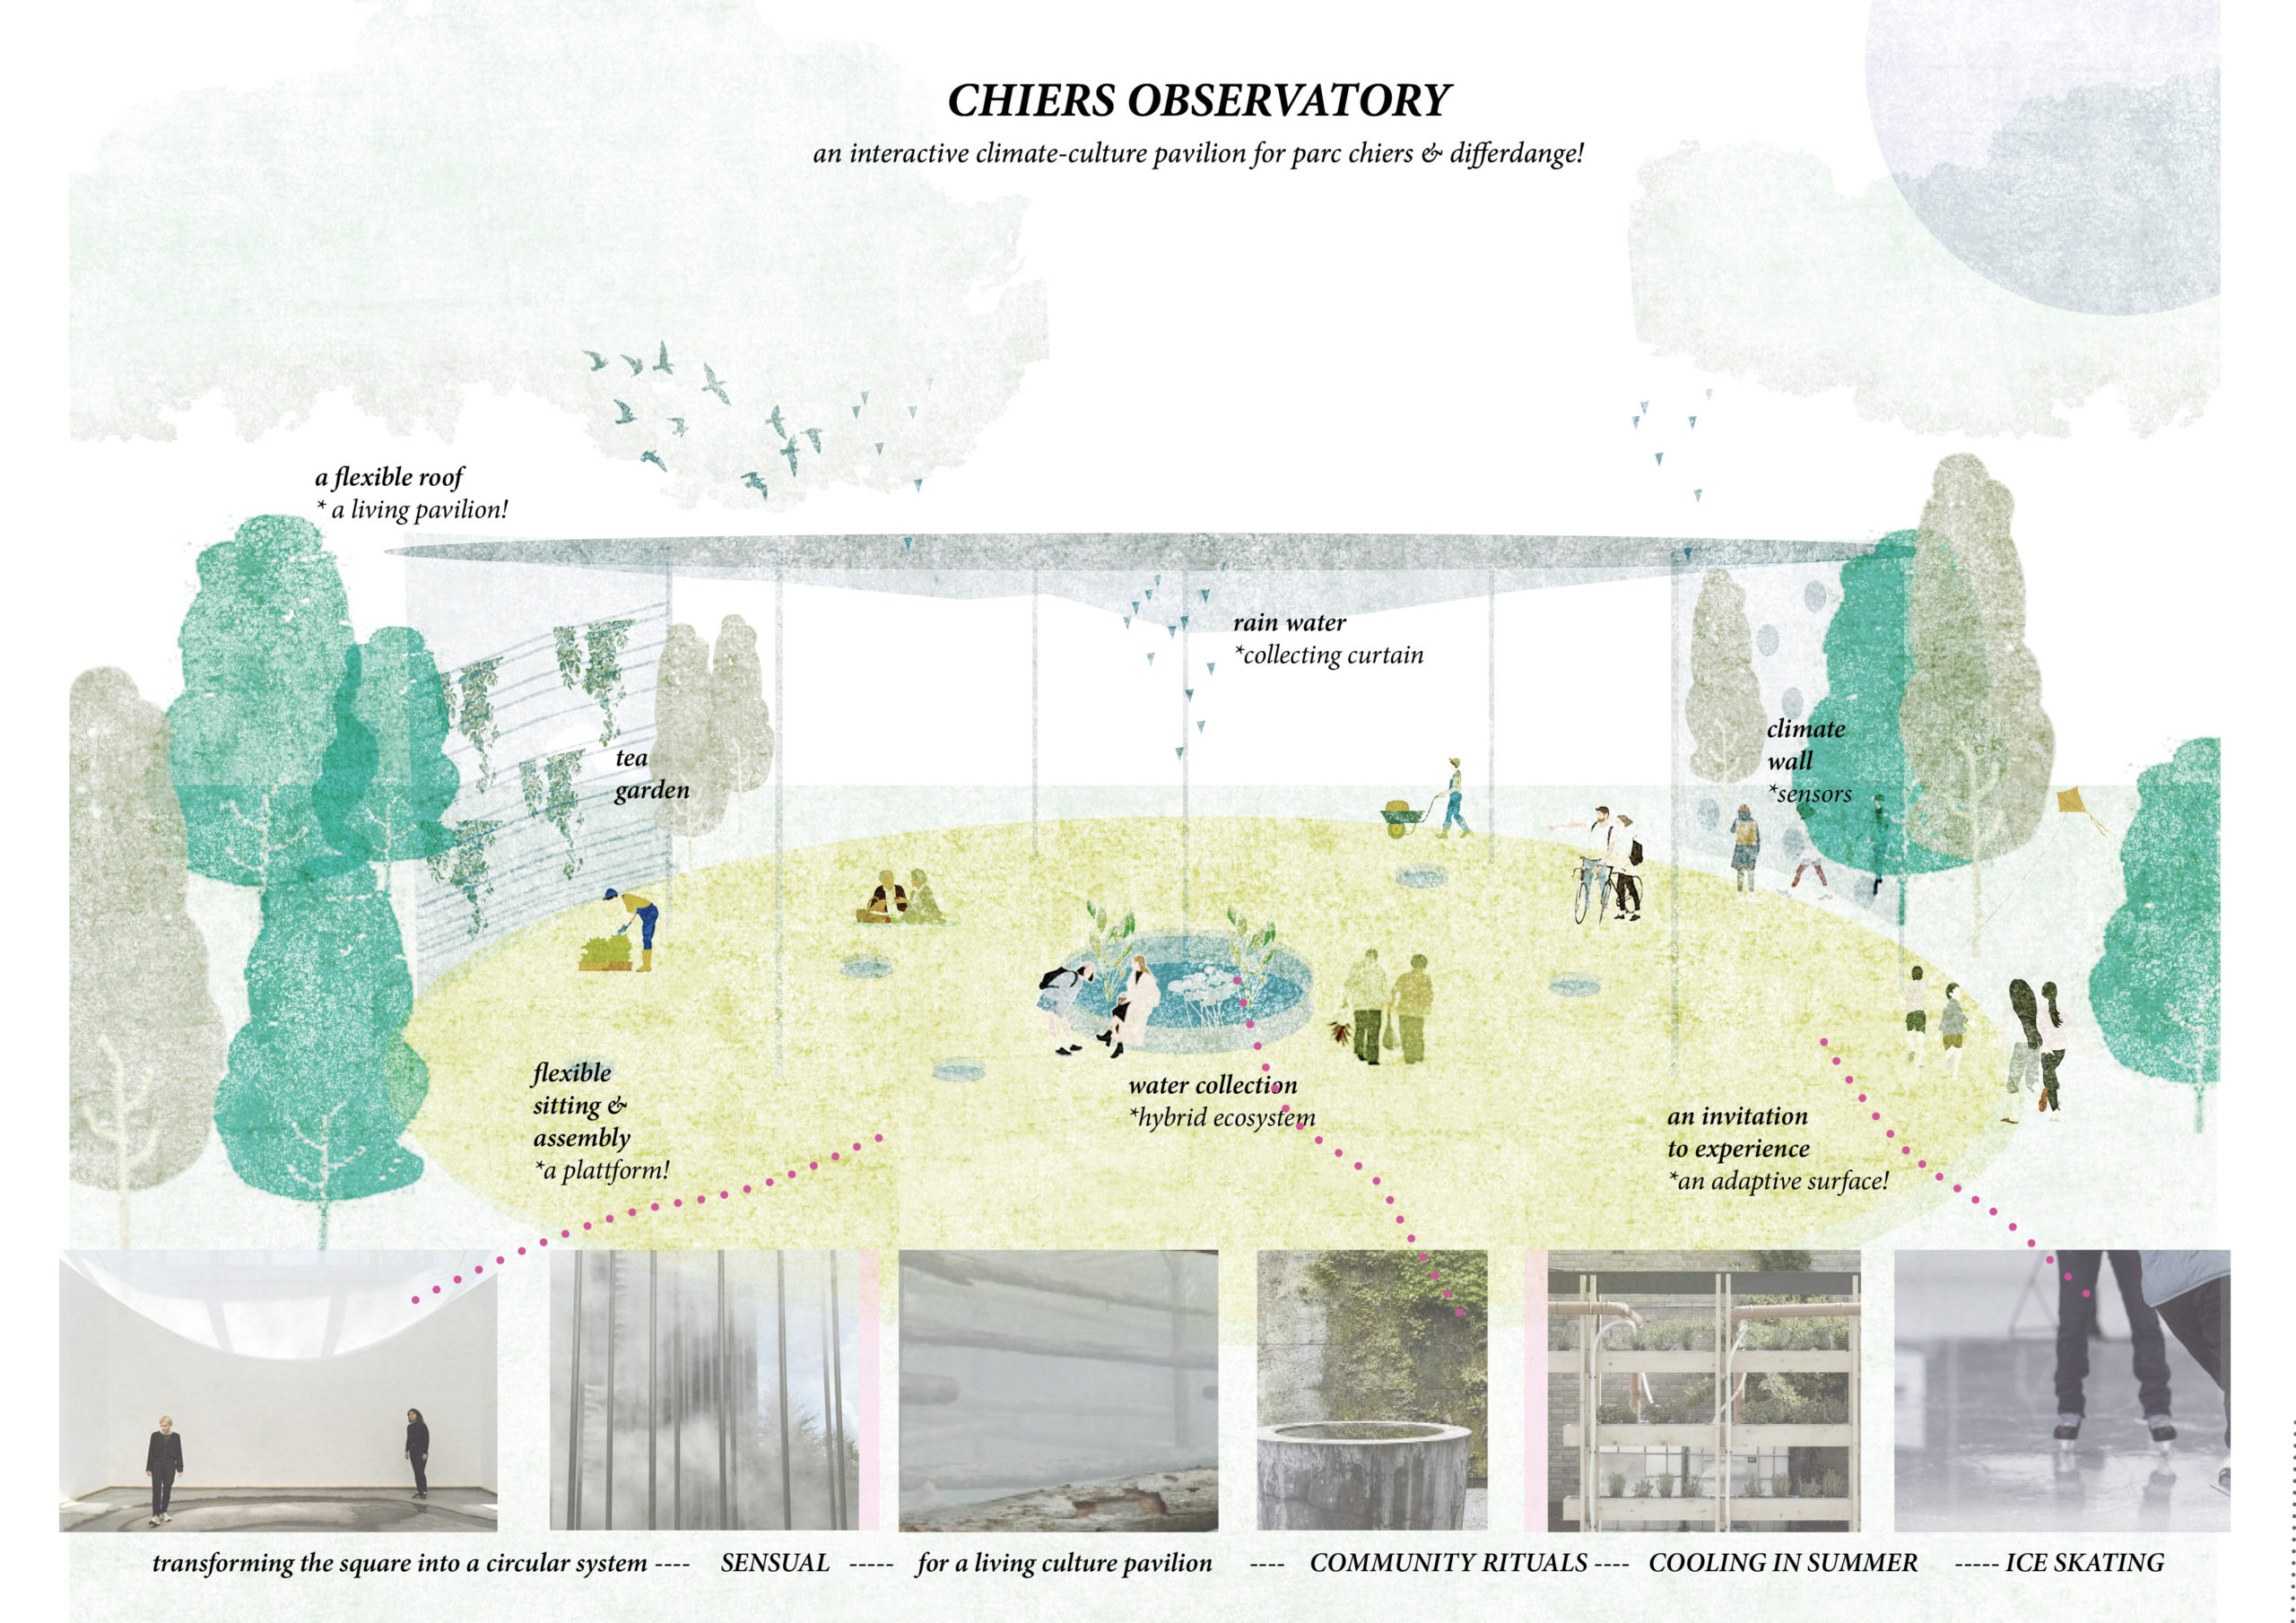 CHIERS OBSERVATORY_an interactive climate-culture pavillon for parc chiers & differdange!